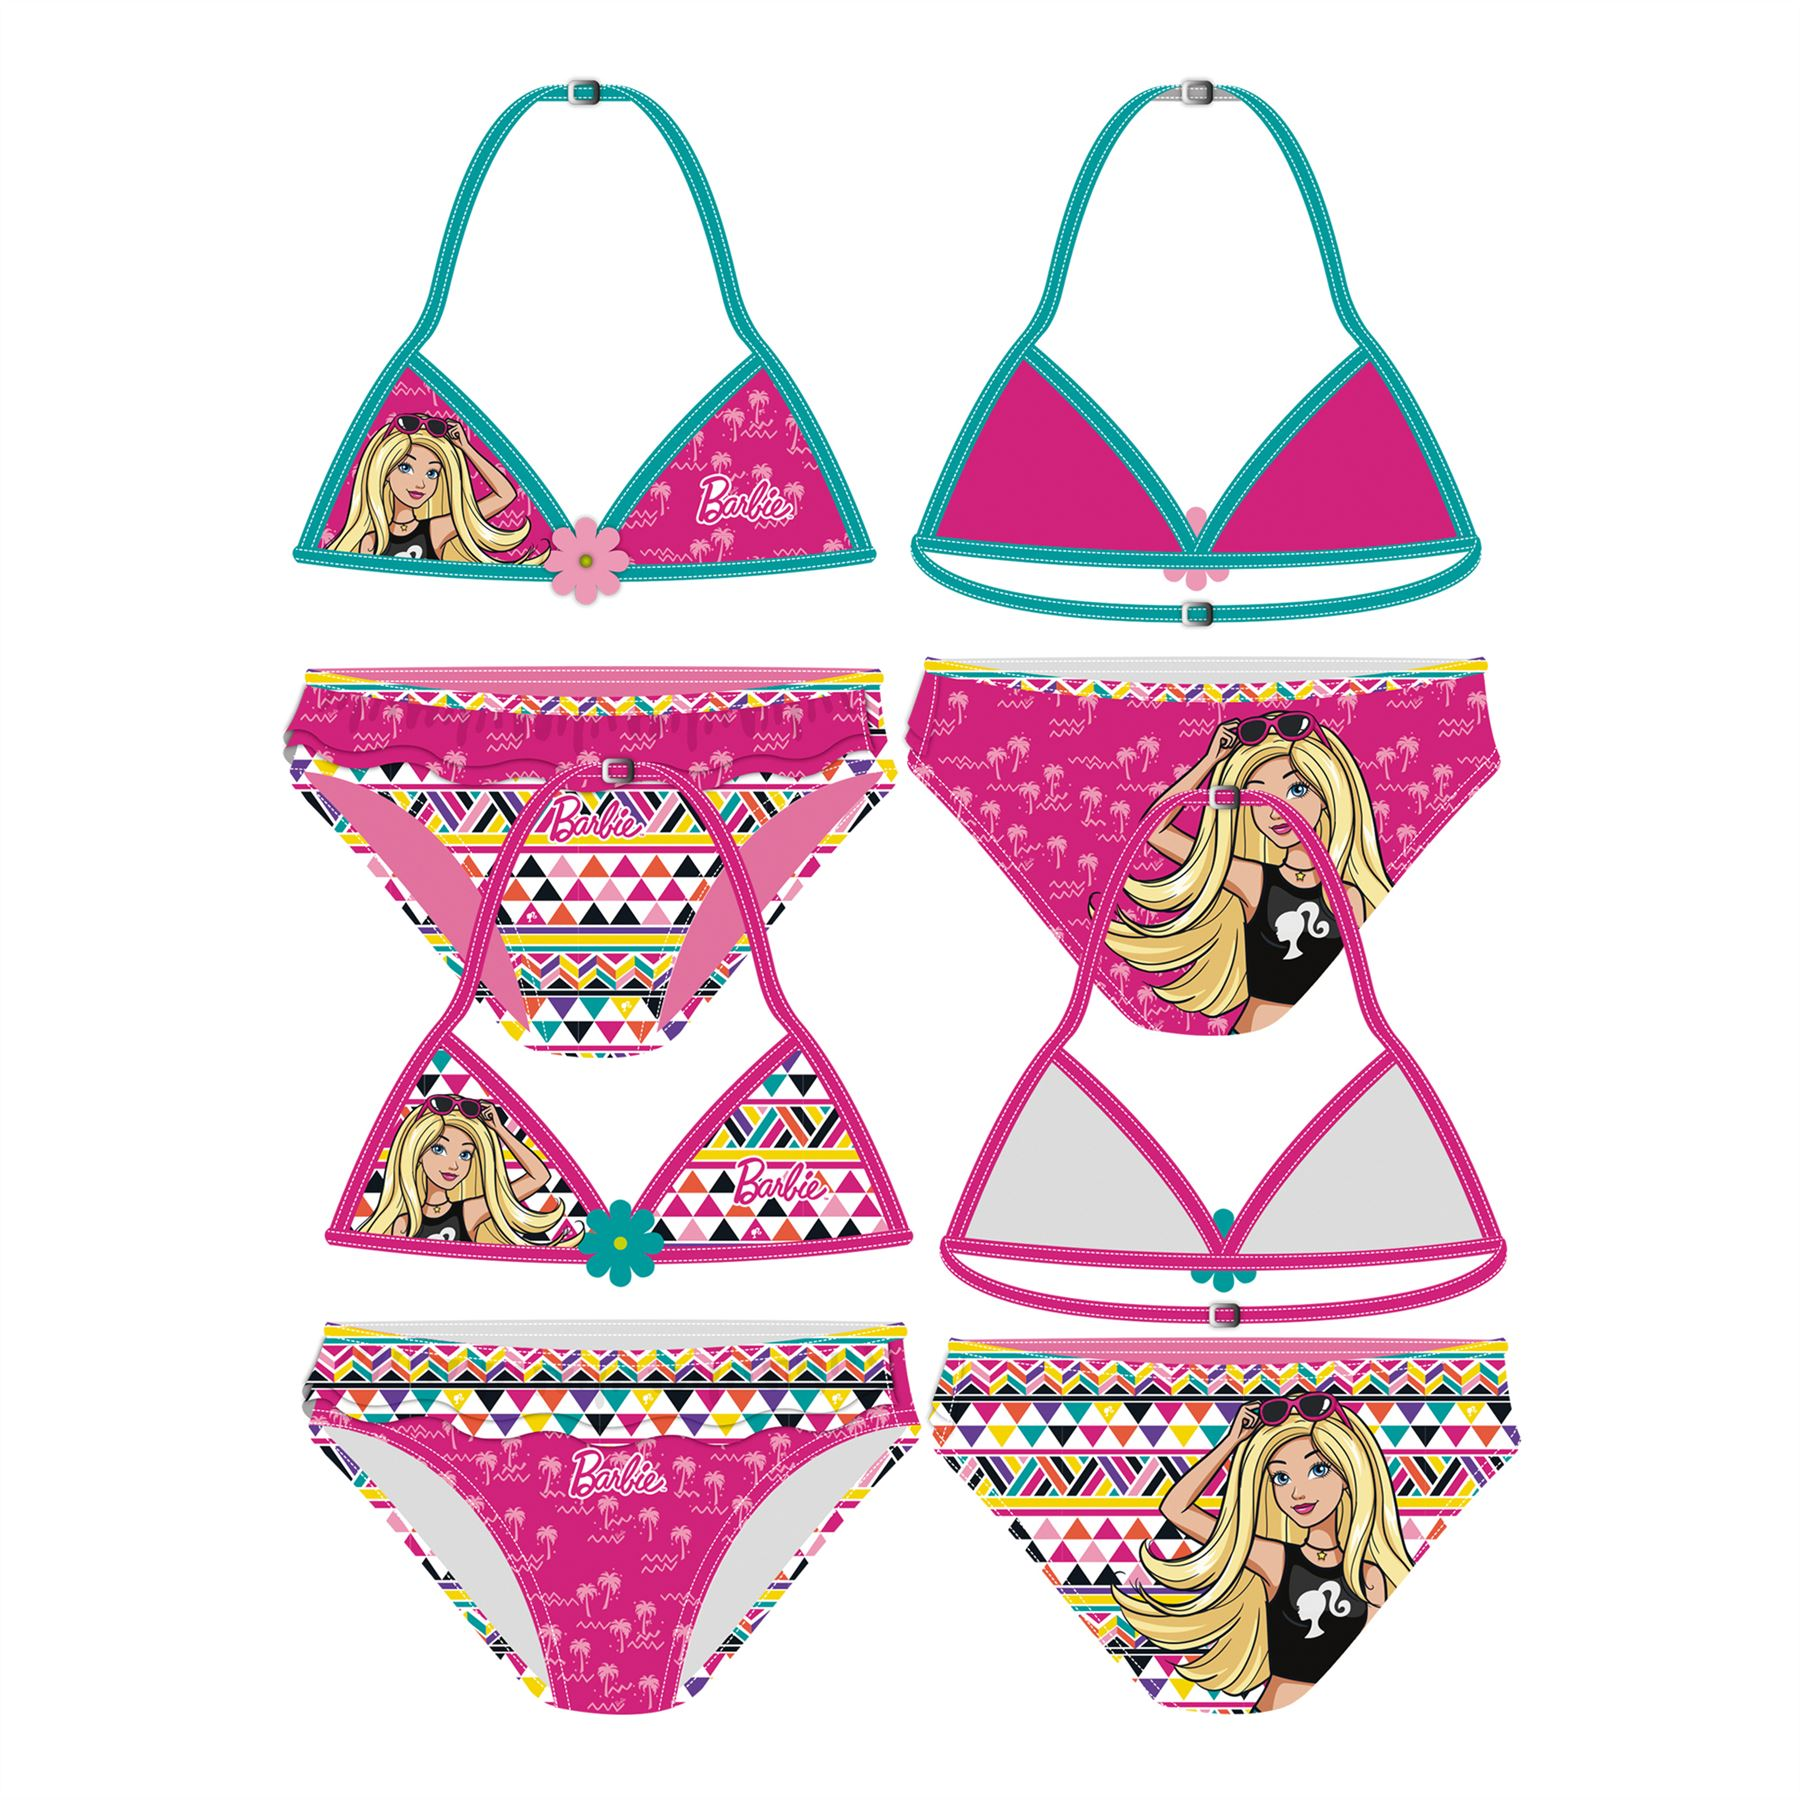 Girls-Bikini-Set-Childrens-Kids-Swimming-Costume-Age-3-8-Years thumbnail 5